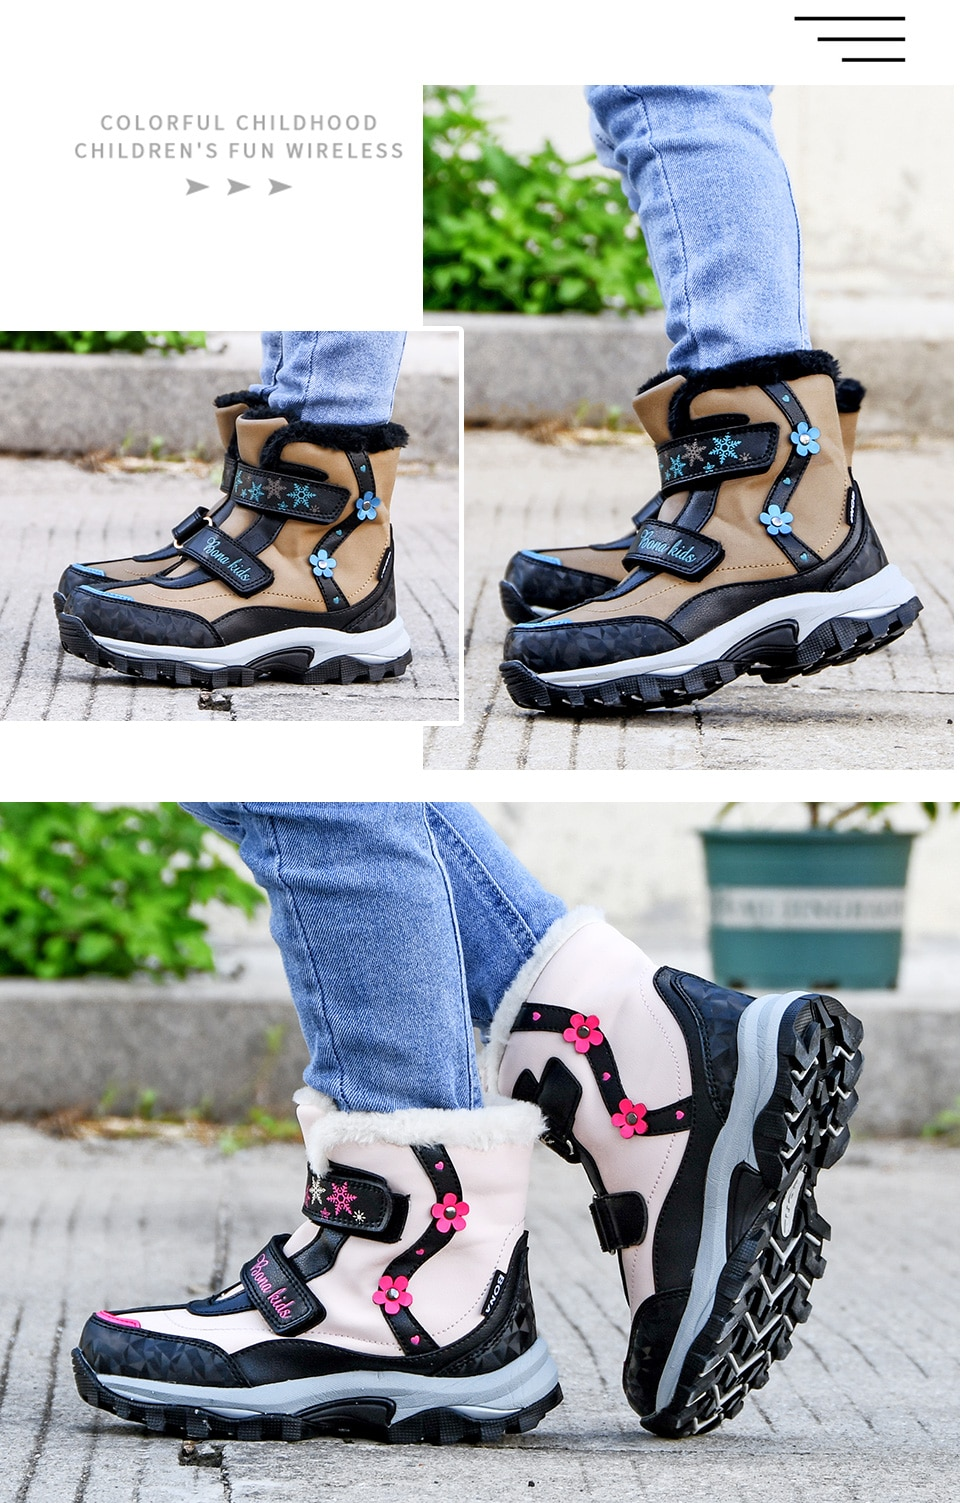 BONA 2020 New Arrival Winter Mid-Calf Plush Snow Boots Children Outdoor Durable Boots Kids Anti-Slip High Top Girls Boys Shoes